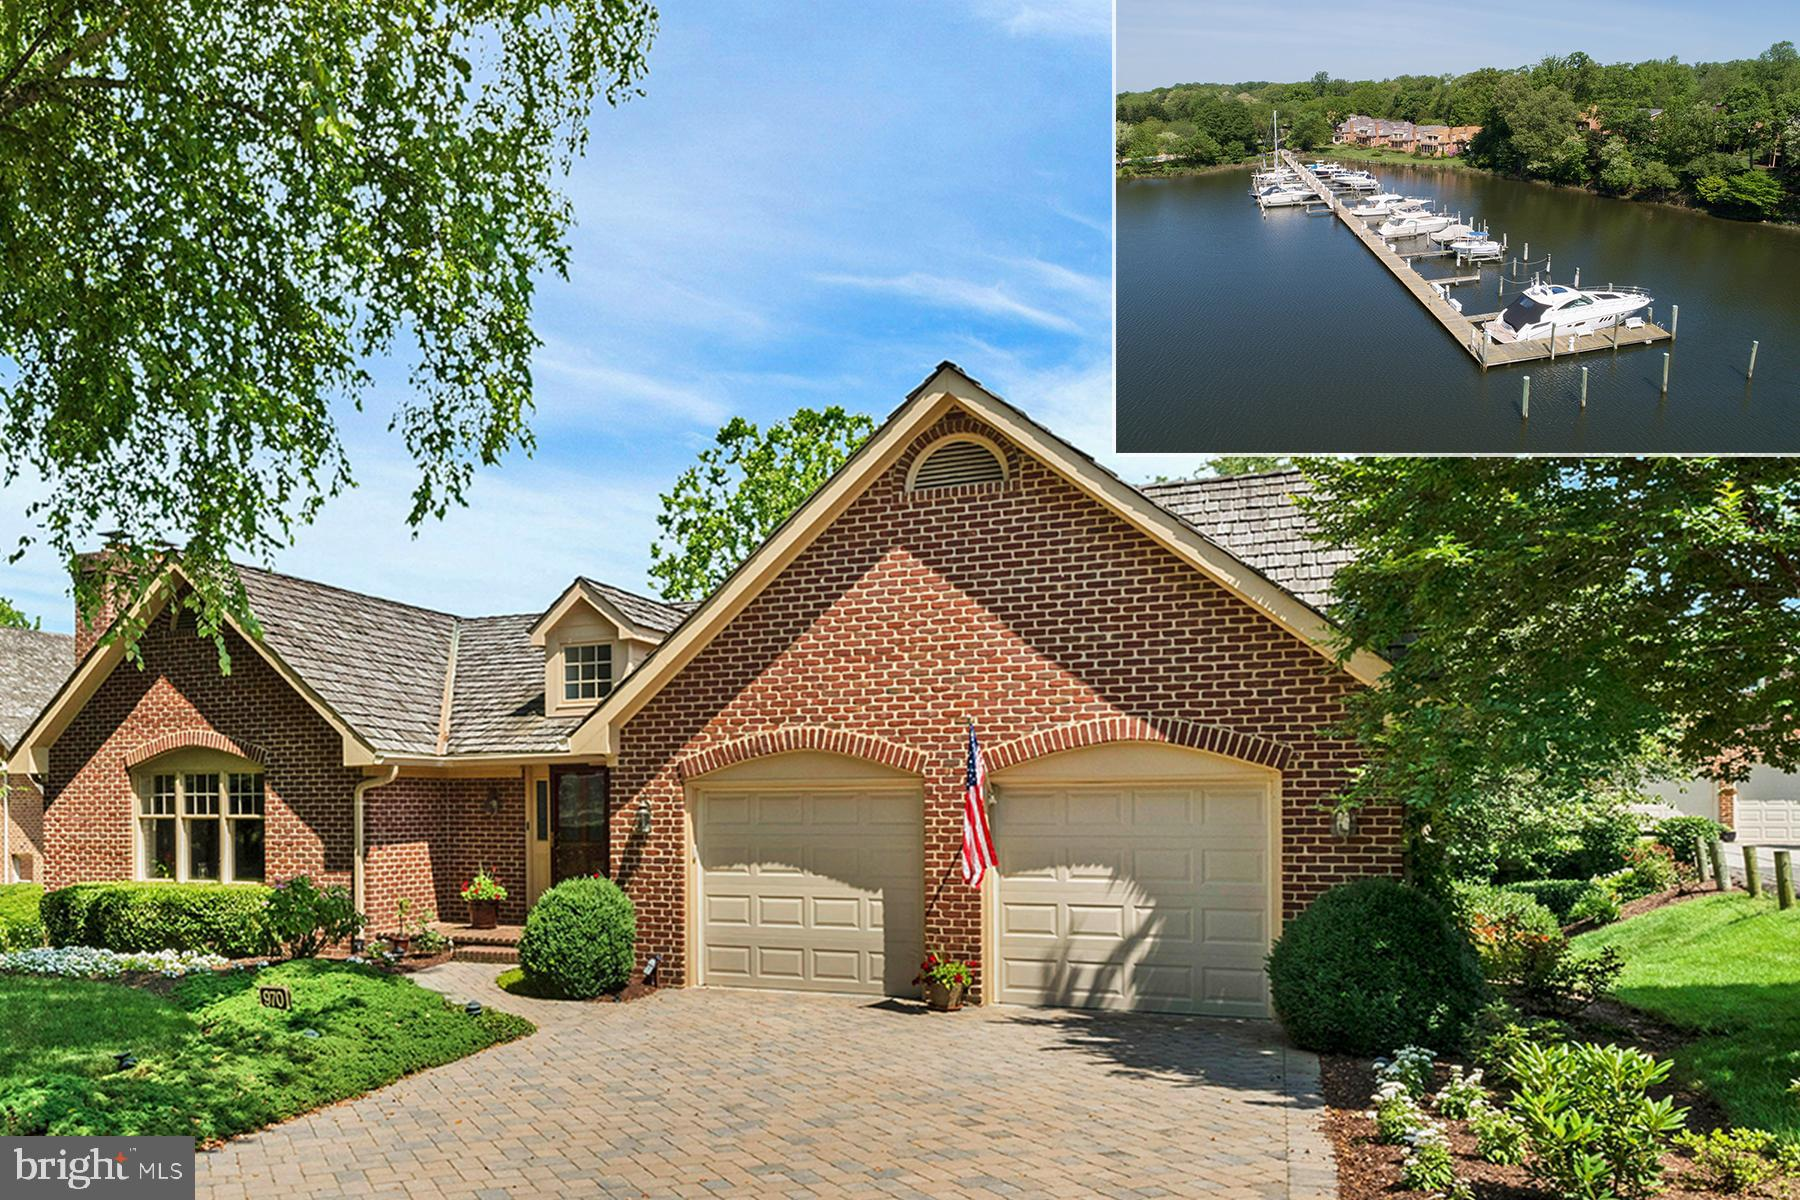 970 SOUTH RIVER LANDING ROAD, EDGEWATER, MD 21037